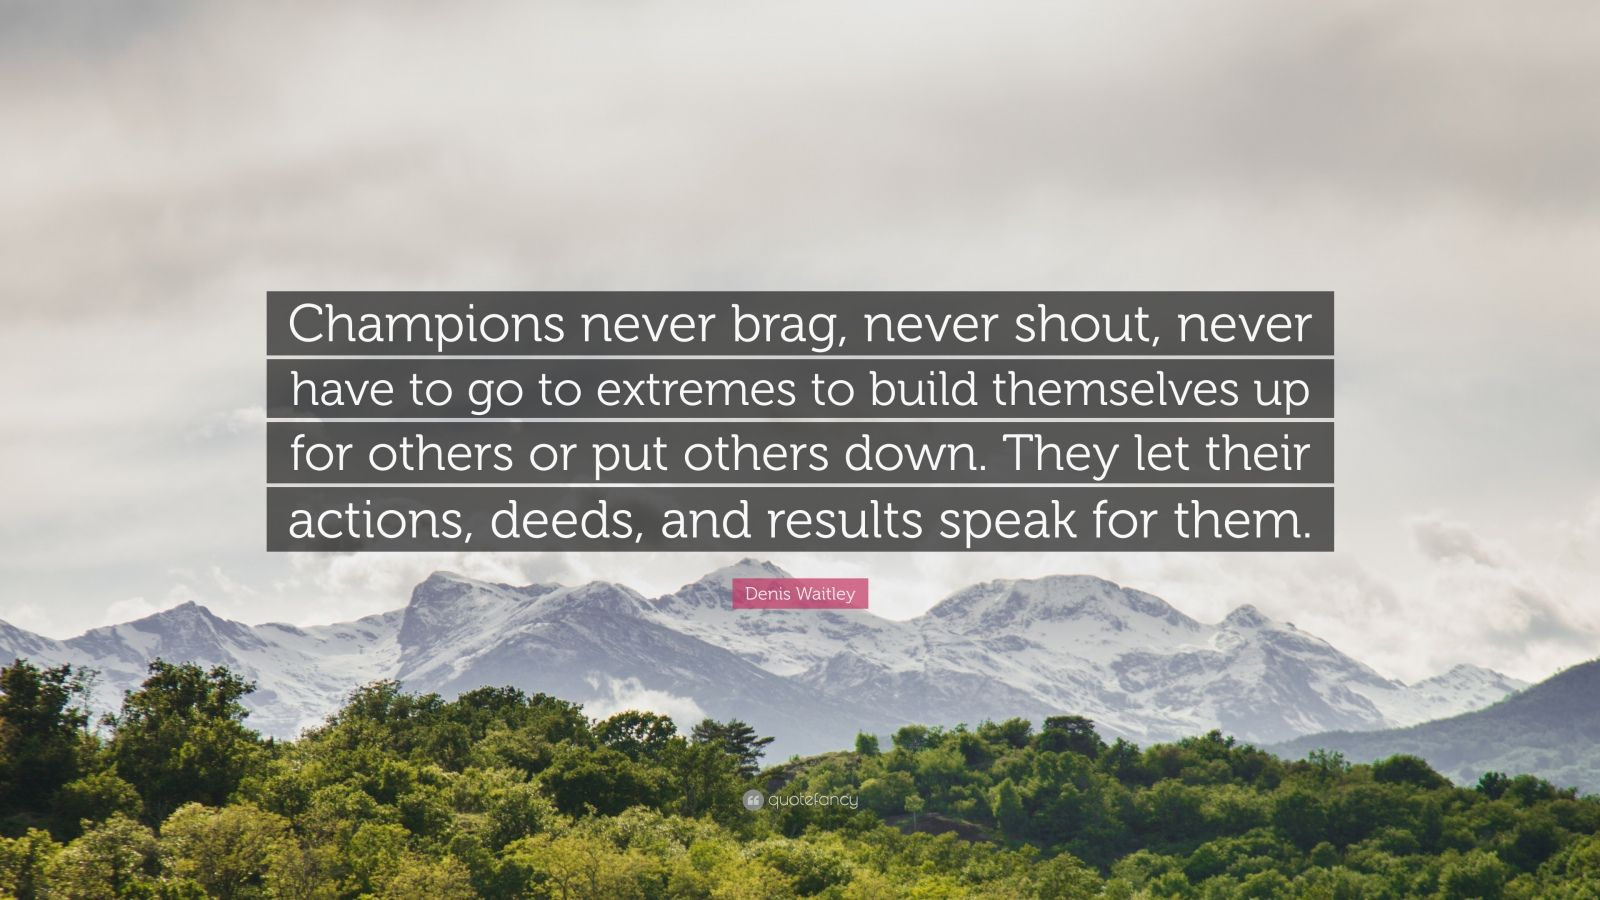 """Denis Waitley Quote: """"Champions never brag, never shout, never have to go to extremes to build themselves up for others or put others down. They let their actions, deeds, and results speak for them."""""""